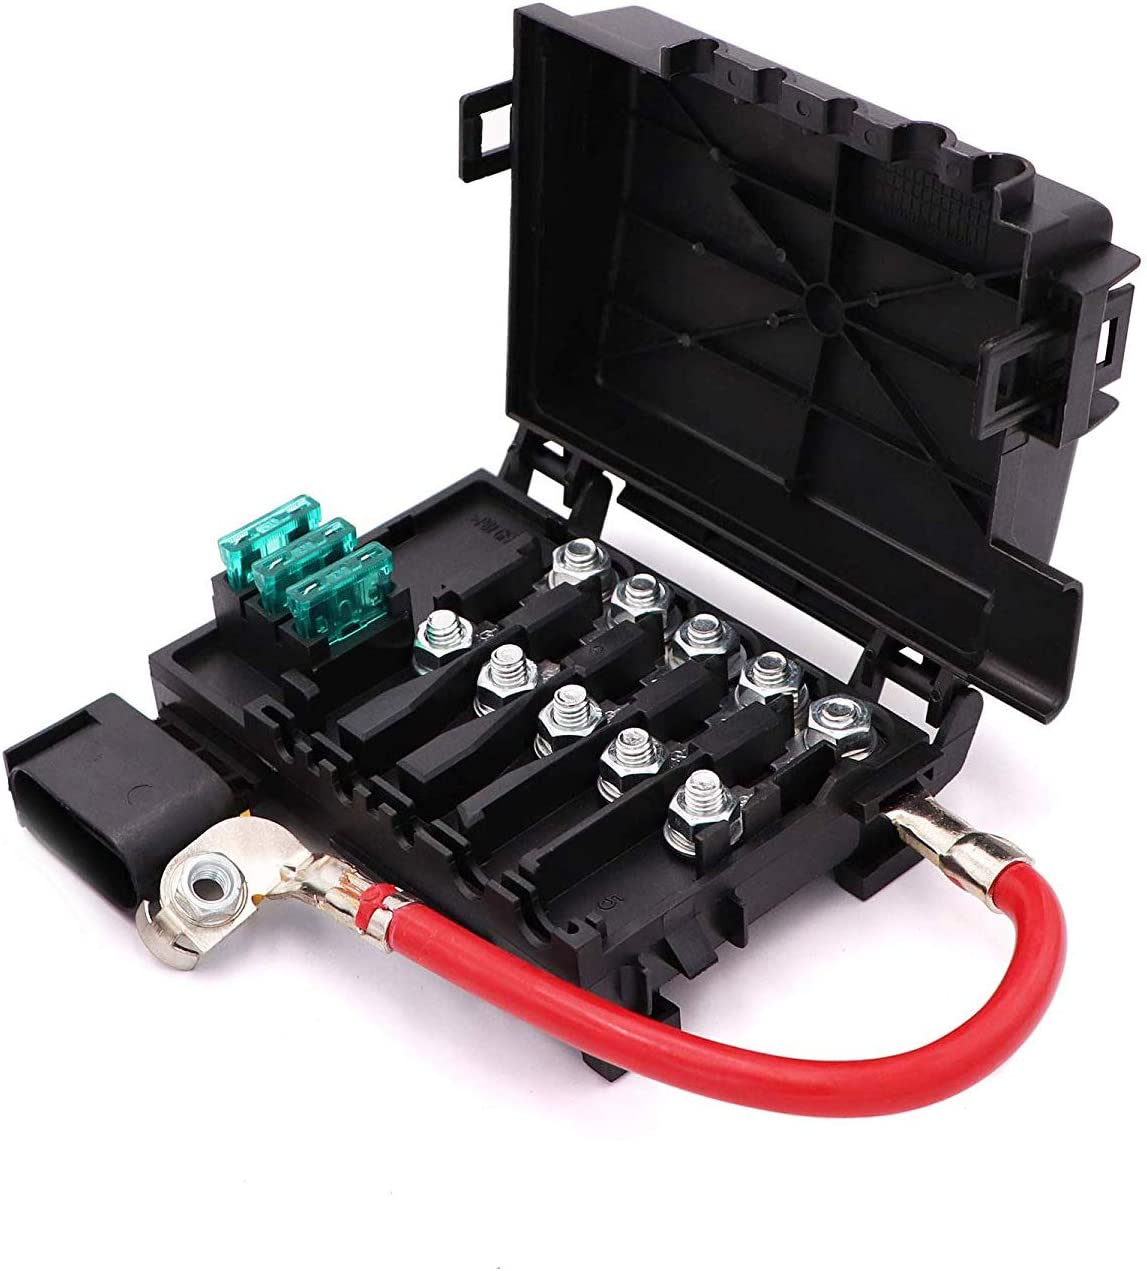 Amazon.com: Fuse Box Battery Terminal For VW Beetle Golf Bora Jetta 2.0  1.9TDI 1J0937550A or 1J0937550B: Automotive | Battery Fuse Box On Vw Bugs |  | Amazon.com